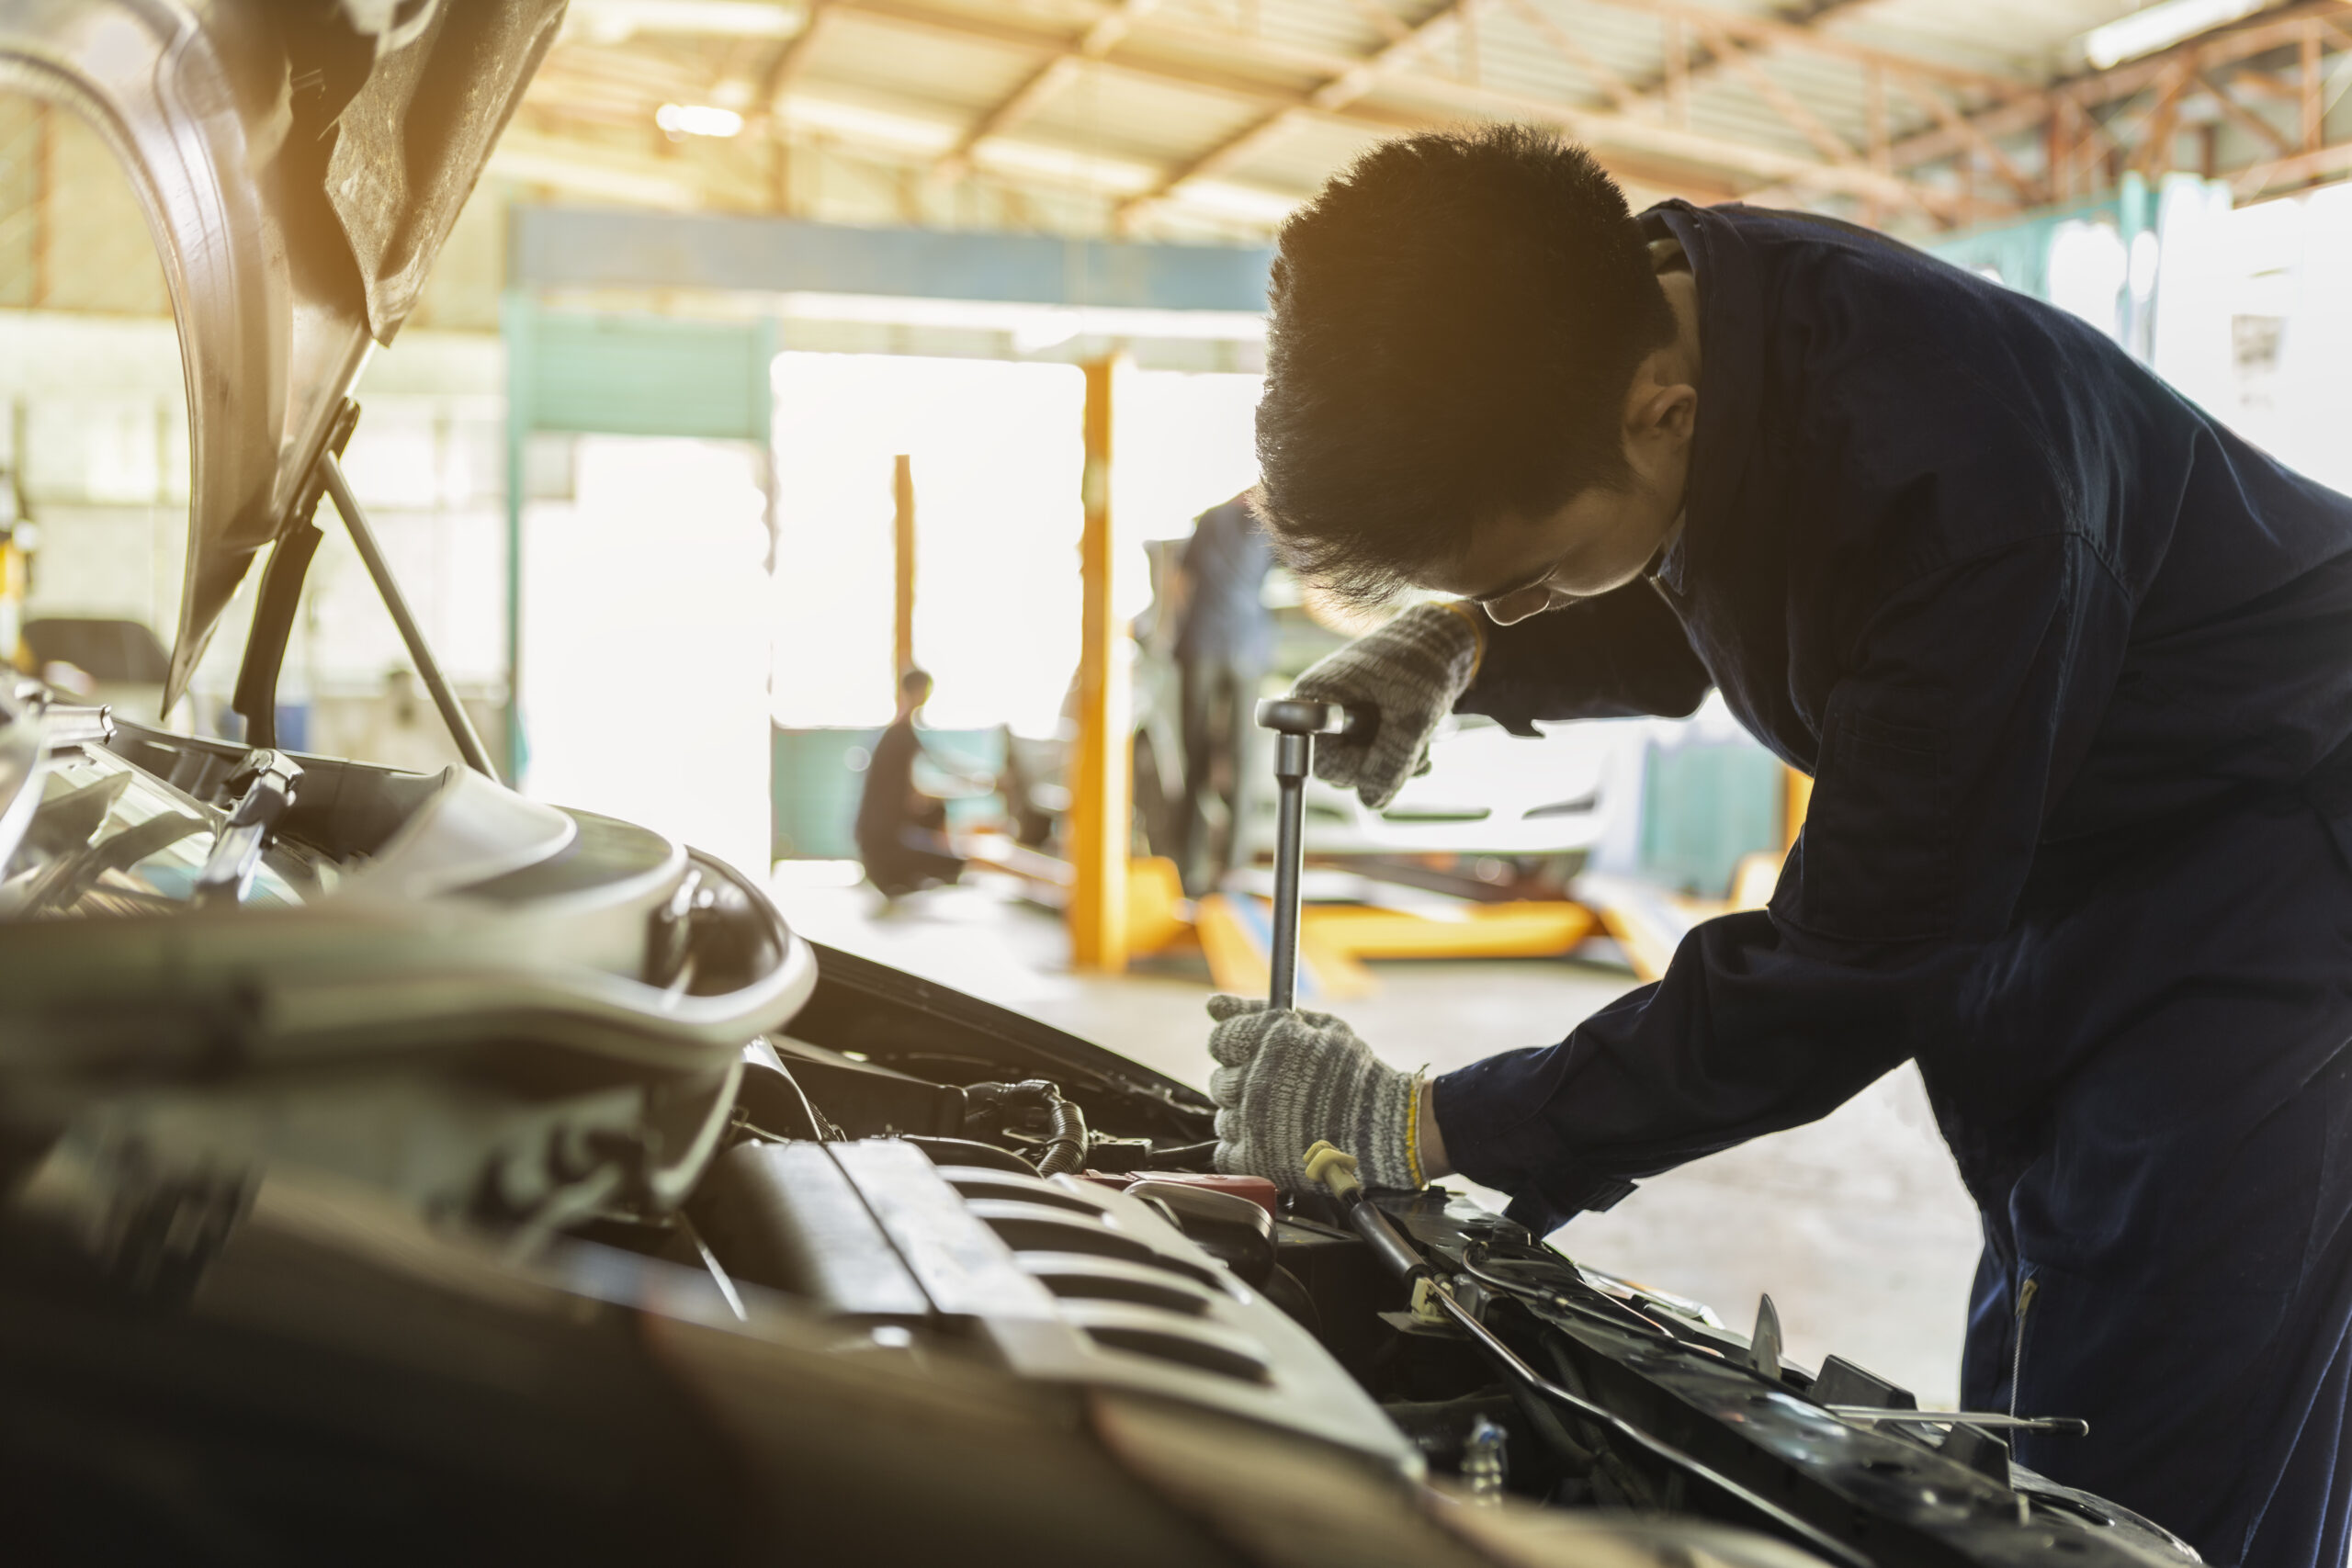 Asian man auto mechanic using a wrench and screwdriver to working service car in garage.